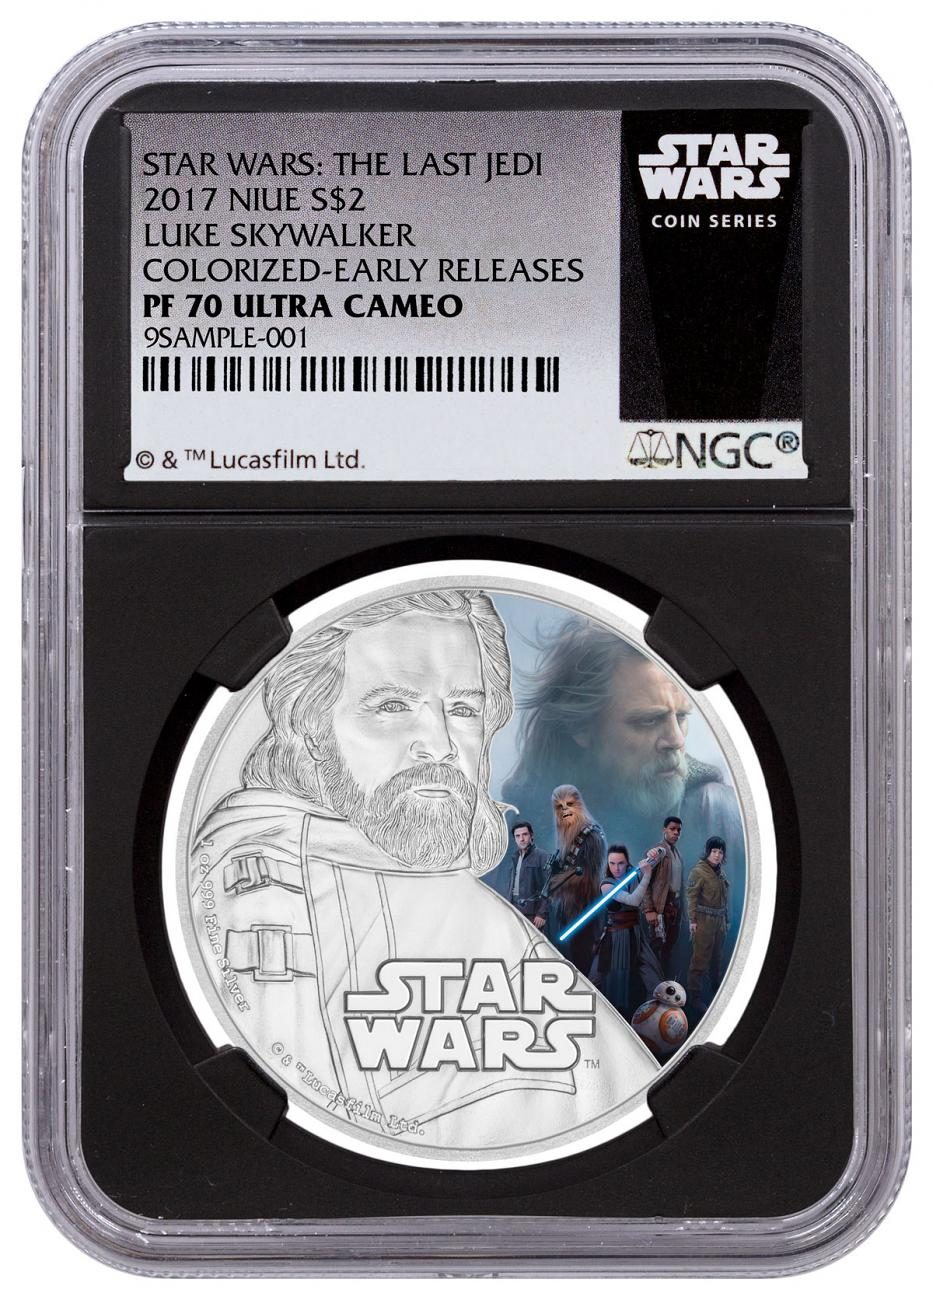 2017 Niue Star Wars: The Last Jedi - Luke Skywalker 1 oz Silver Colorized Proof $2 Coin NGC PF70 UC ER Black Core Holder Exclusive Star Wars Label